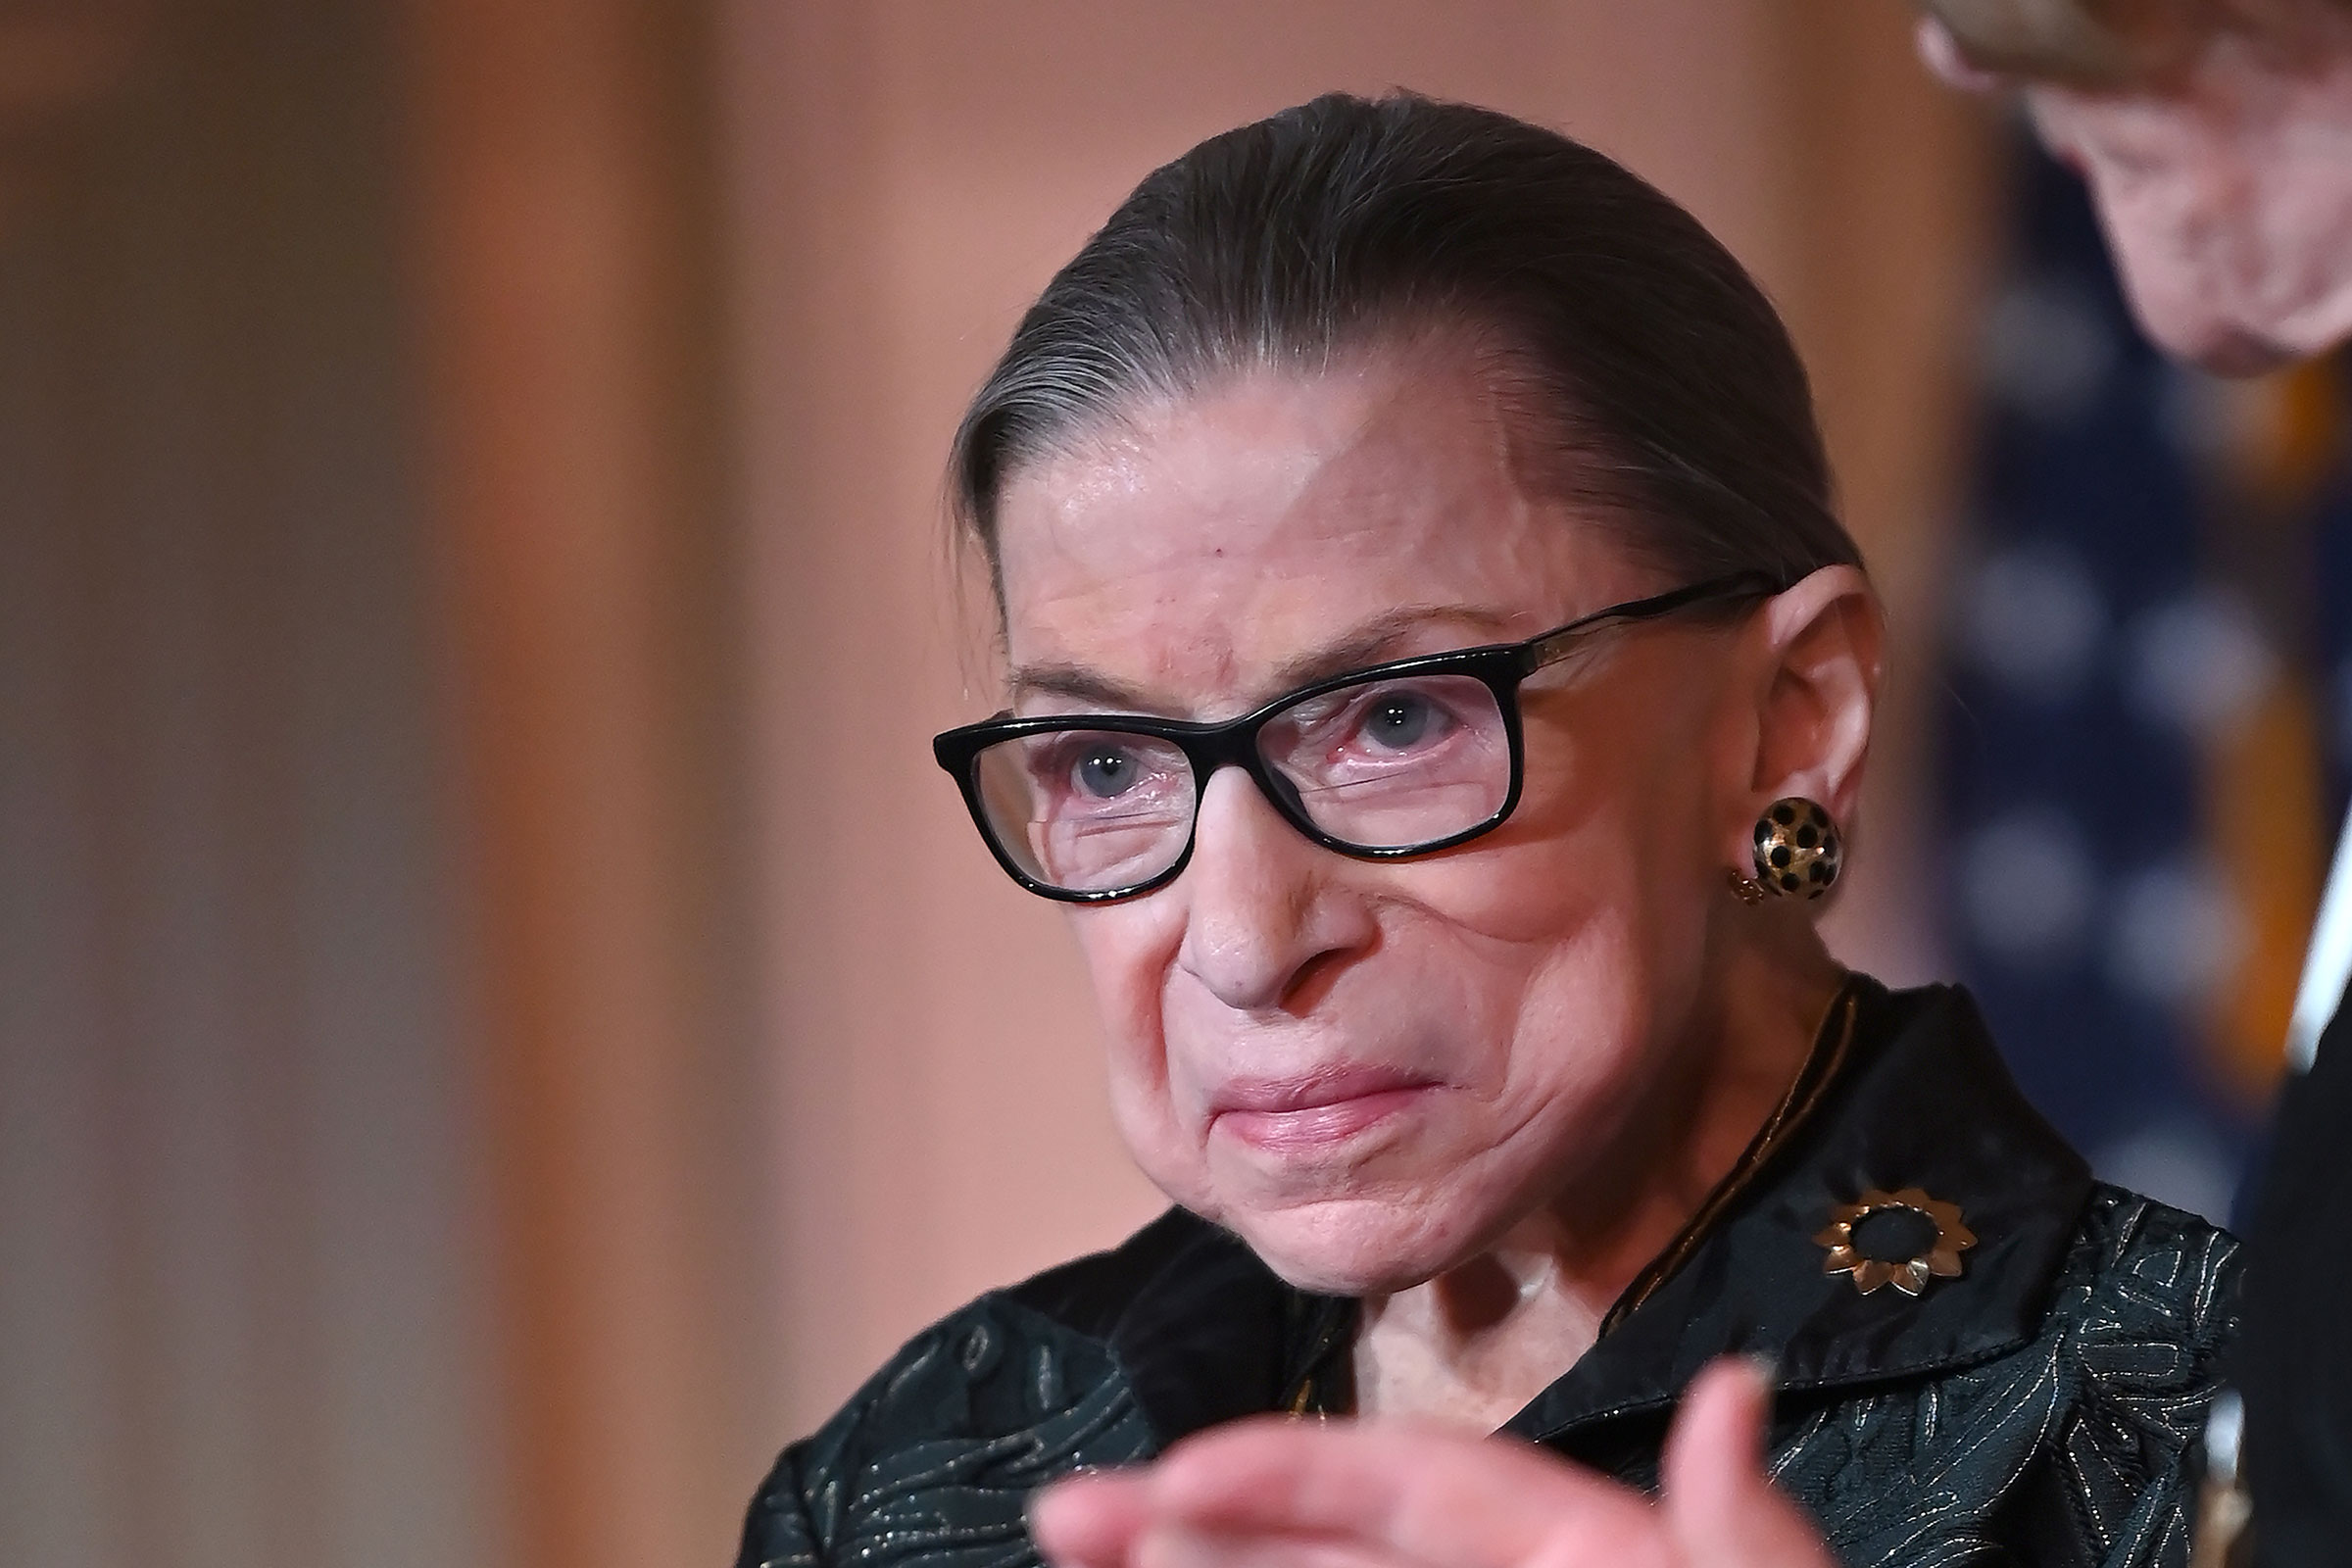 Supreme Court Justice Ruth Bader Ginsburg at The Library of Congress on Feb. 14, 2020 in Washington, DC.